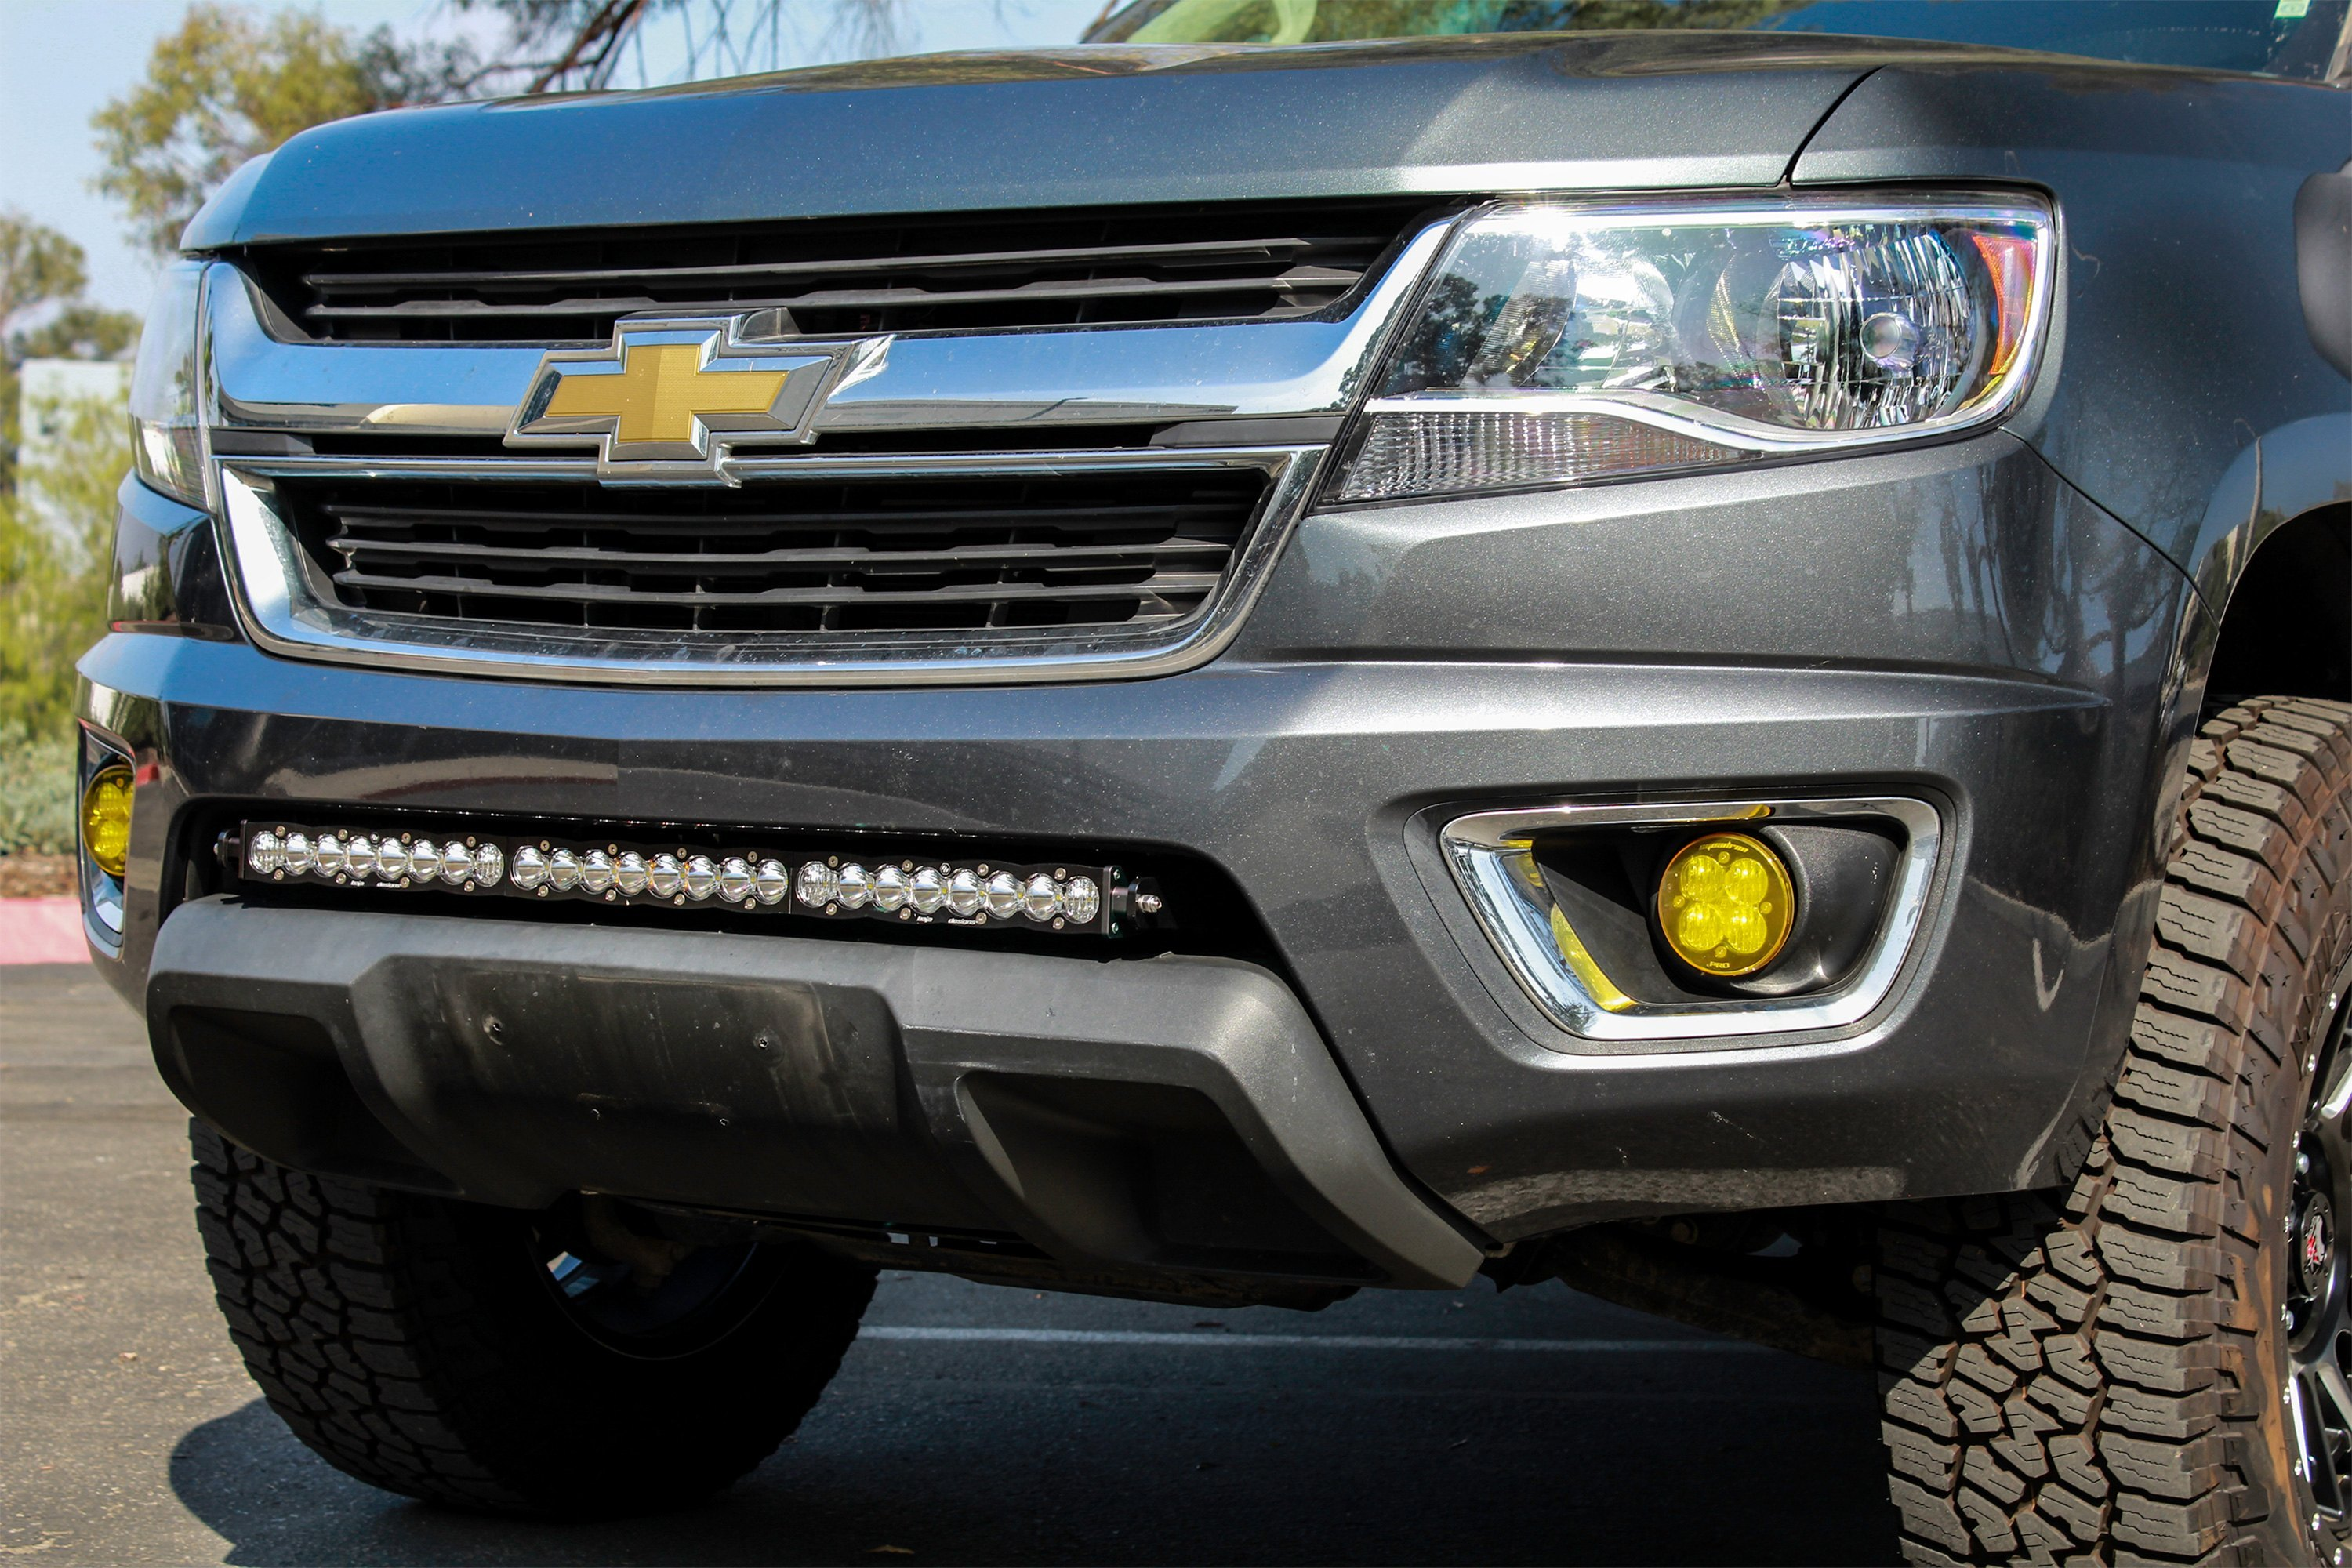 44 7561 installed 9 baja designs® 44 7561 grille mounted s8™ 30\